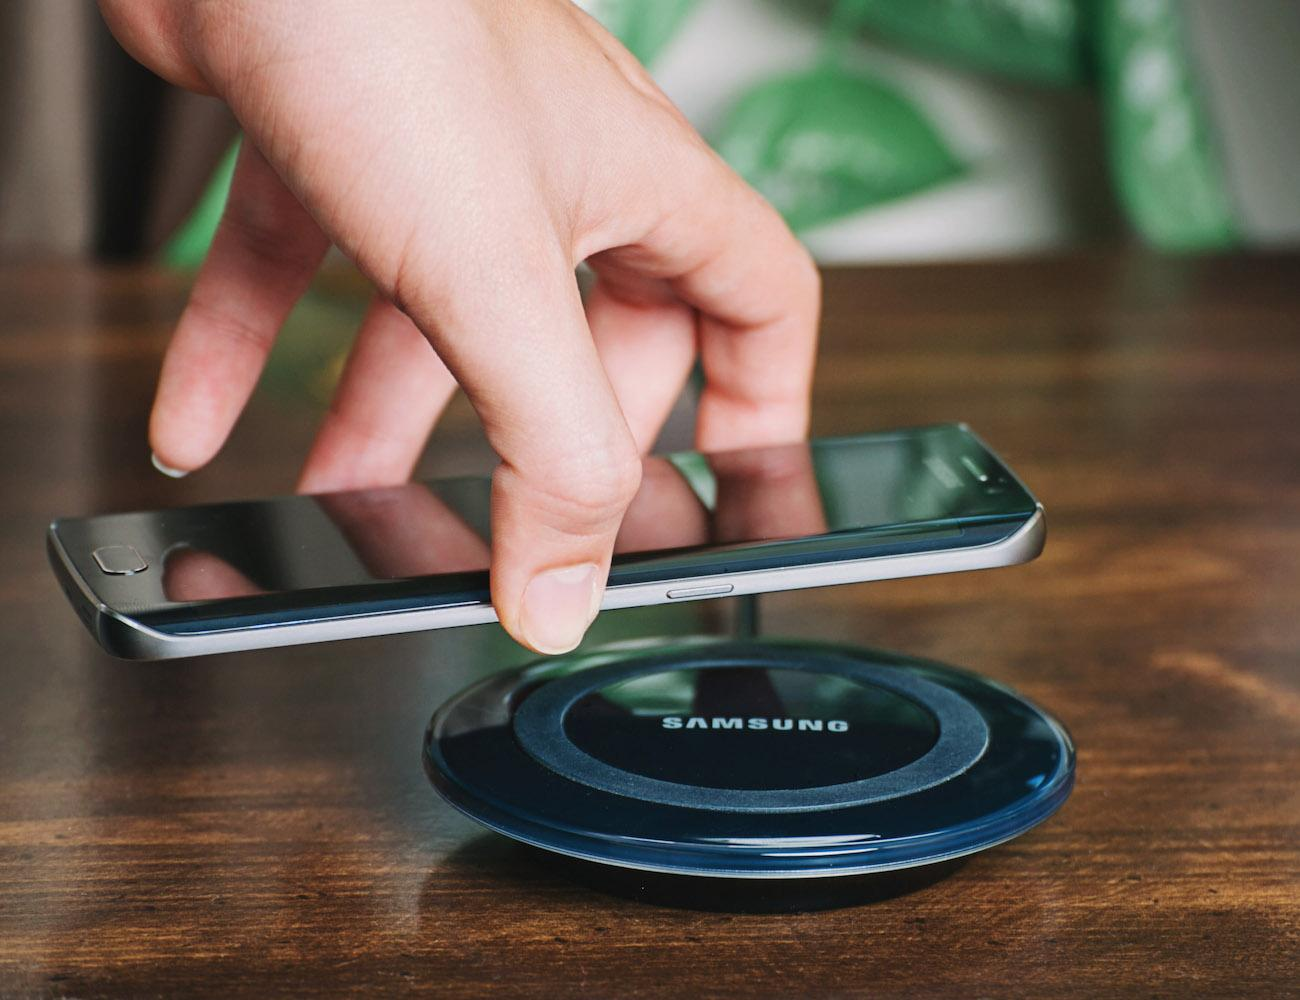 Wireless Charging Technology: What is it?